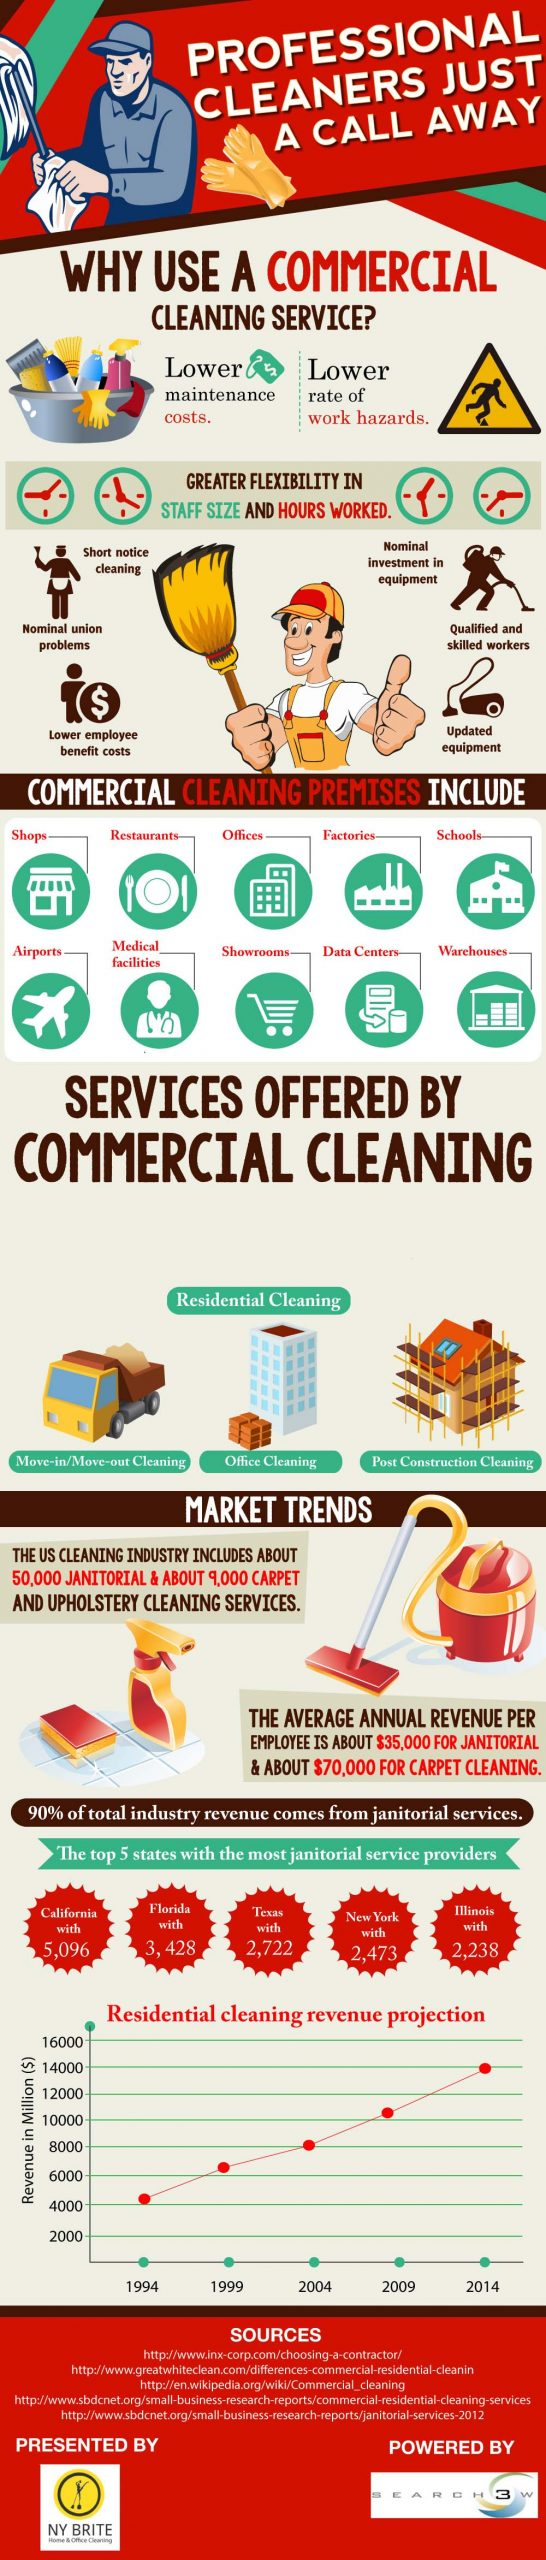 Professional-Cleaners-Manhattan